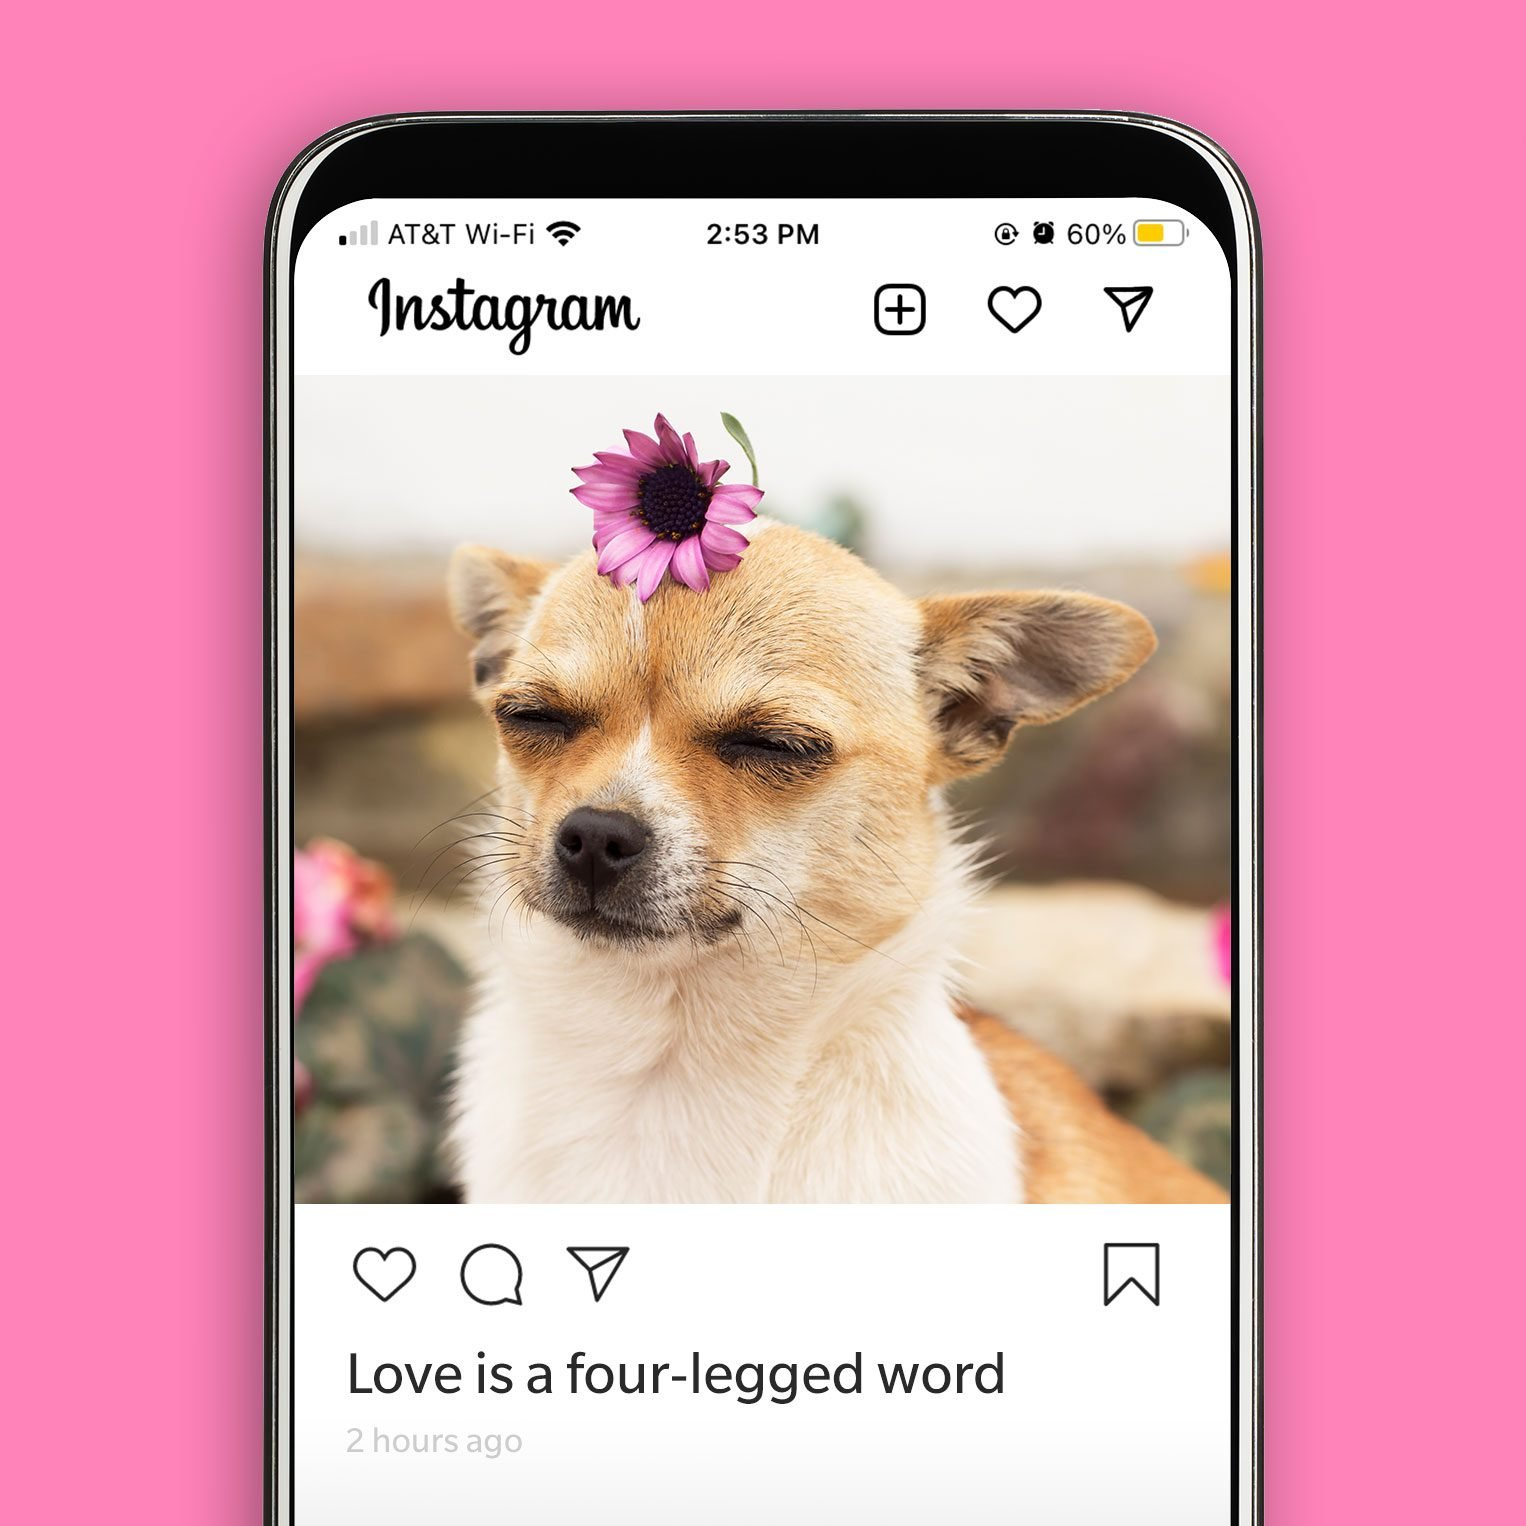 Phone showing an instagram screen with a Chihuahua with a flower on its head. Caption: Love is a four-legged word.